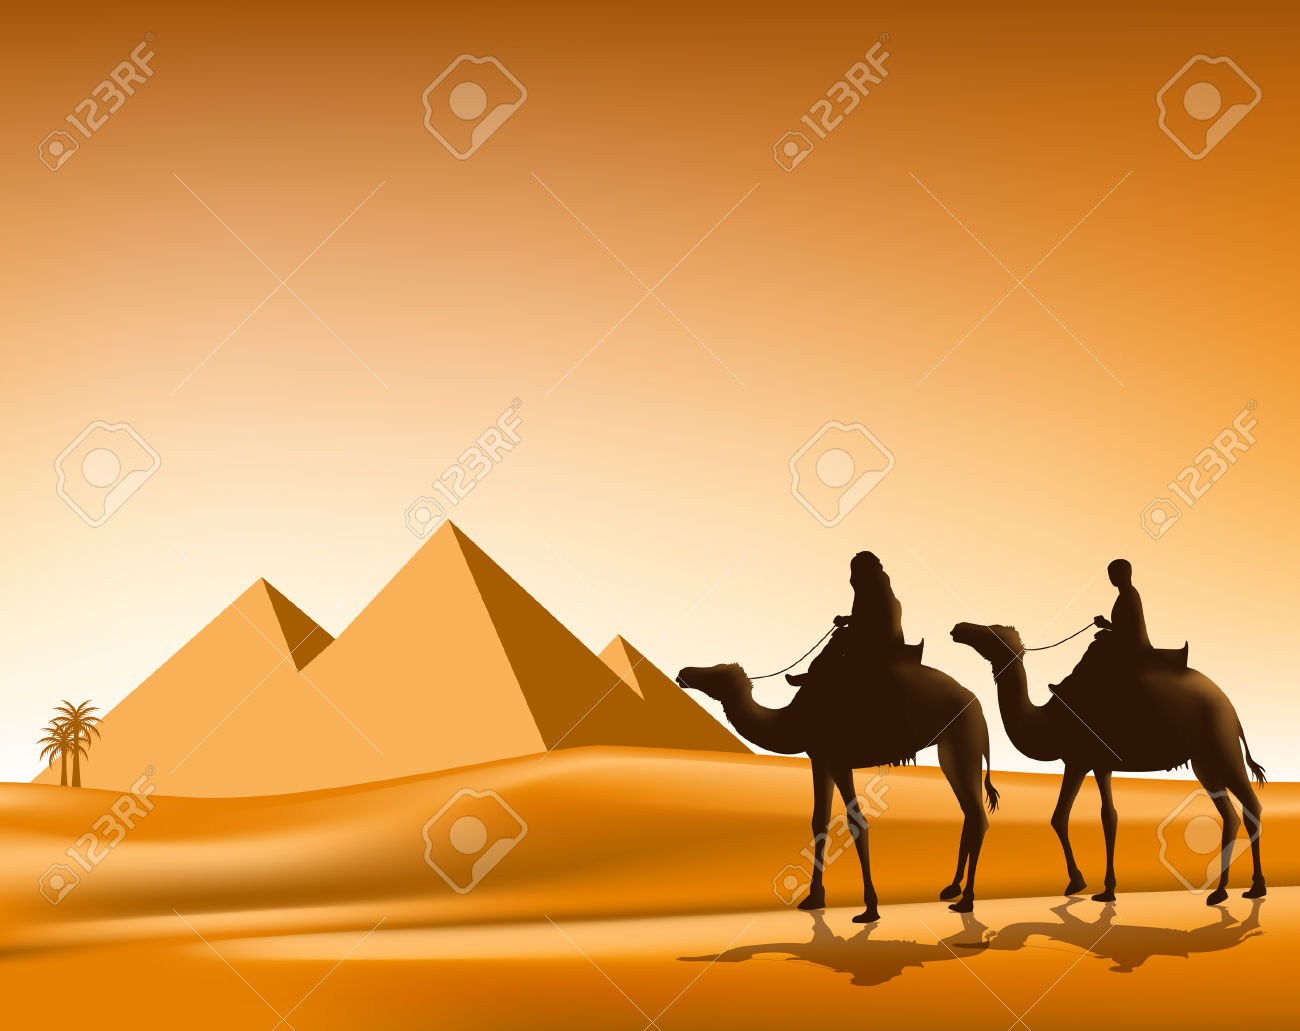 Arabian Desert clipart #15, Download drawings